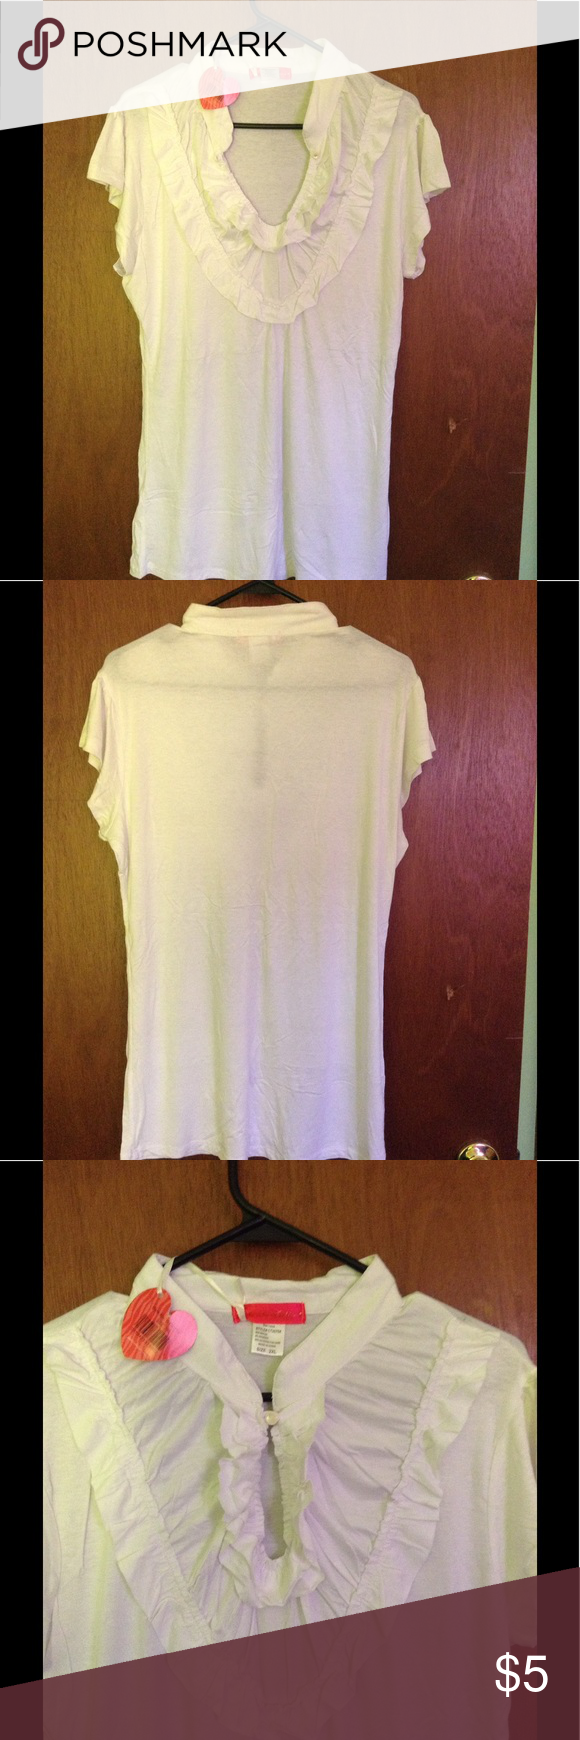 🇺🇸 Extraordinary bargain Bright White T Style Bright White Design T-shirt Style (NWT) great for people with long torso. Very comfy, and flows freely. One of those pcs. that can be used with almost anything and for everything. Just too big on me, w t to go home with you. Extraordinary bargain. Fits nicely on an XL or 1X Na Na Fashions Tops Tees - Short Sleeve